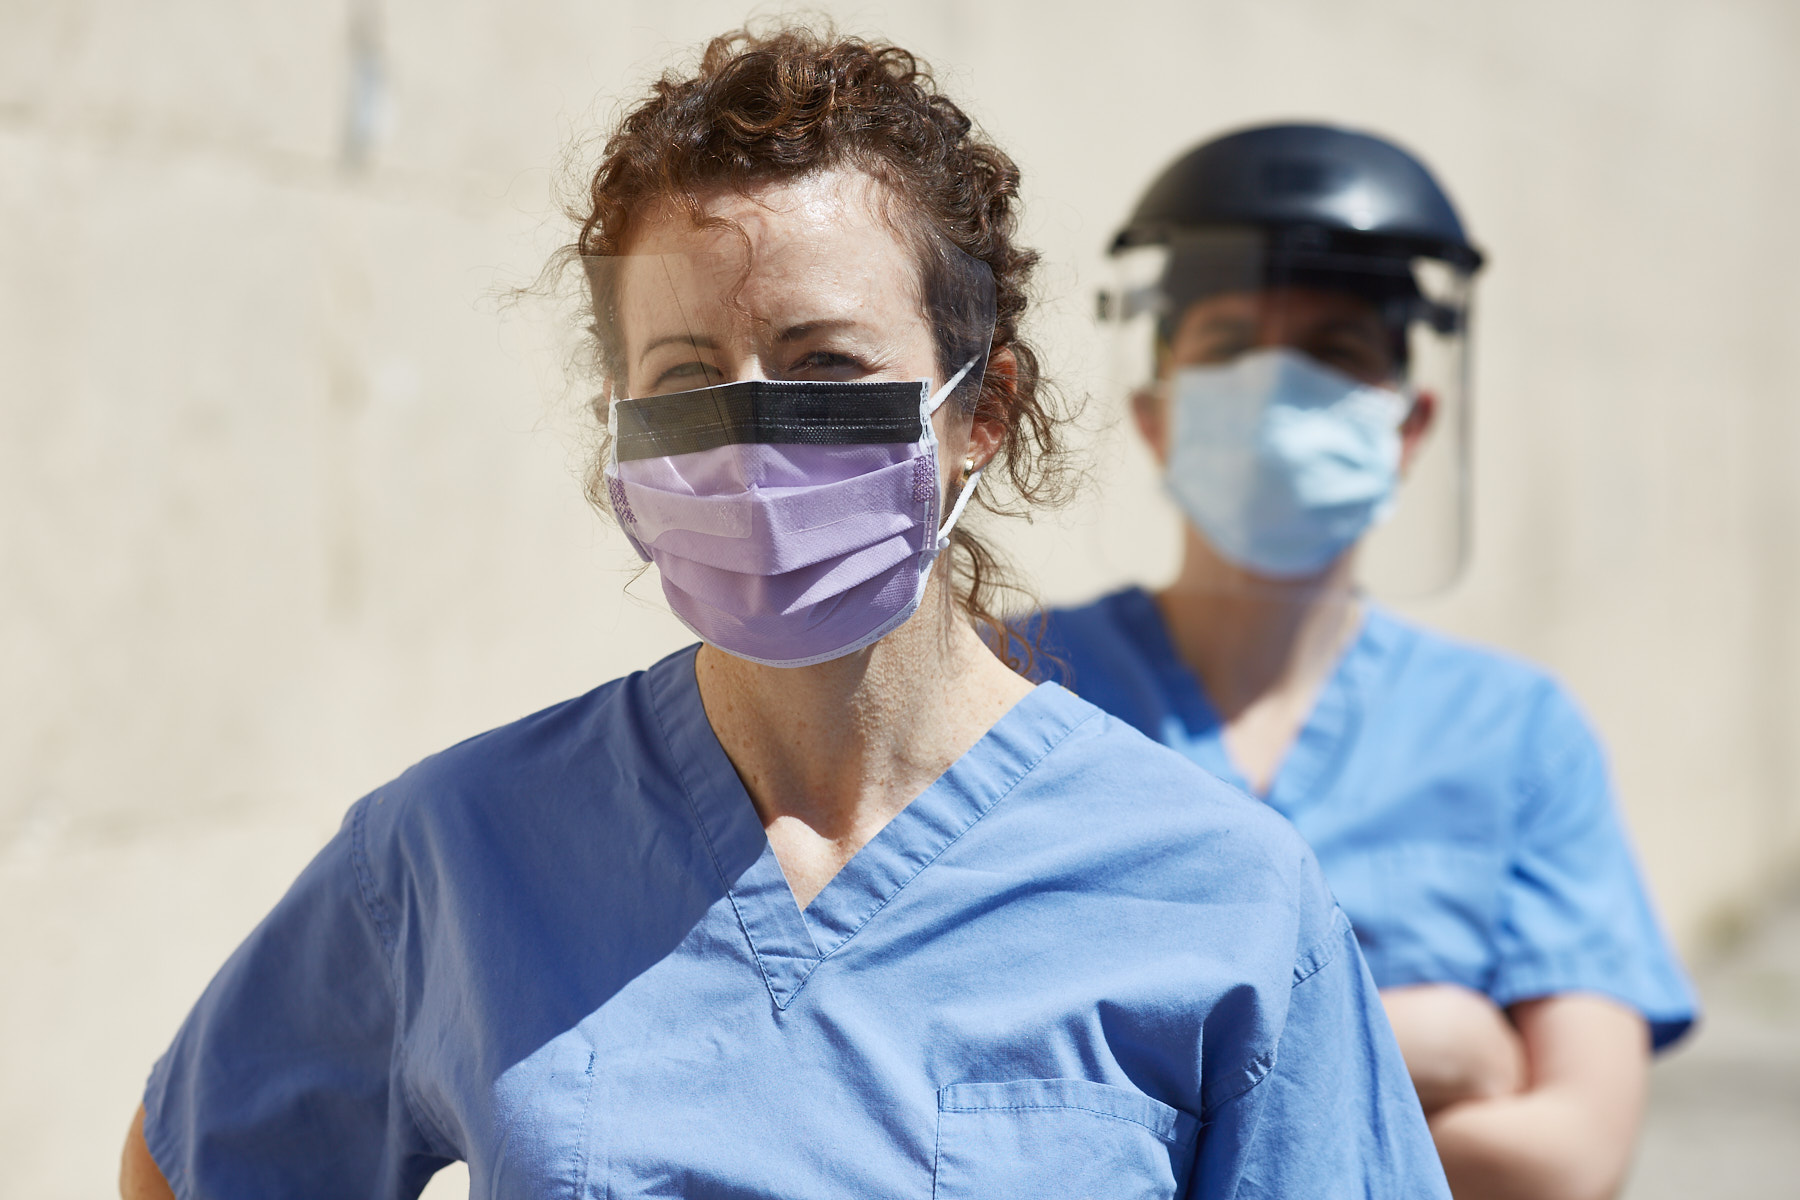 model released nurses and healthcare workers during coronavirus stock photos